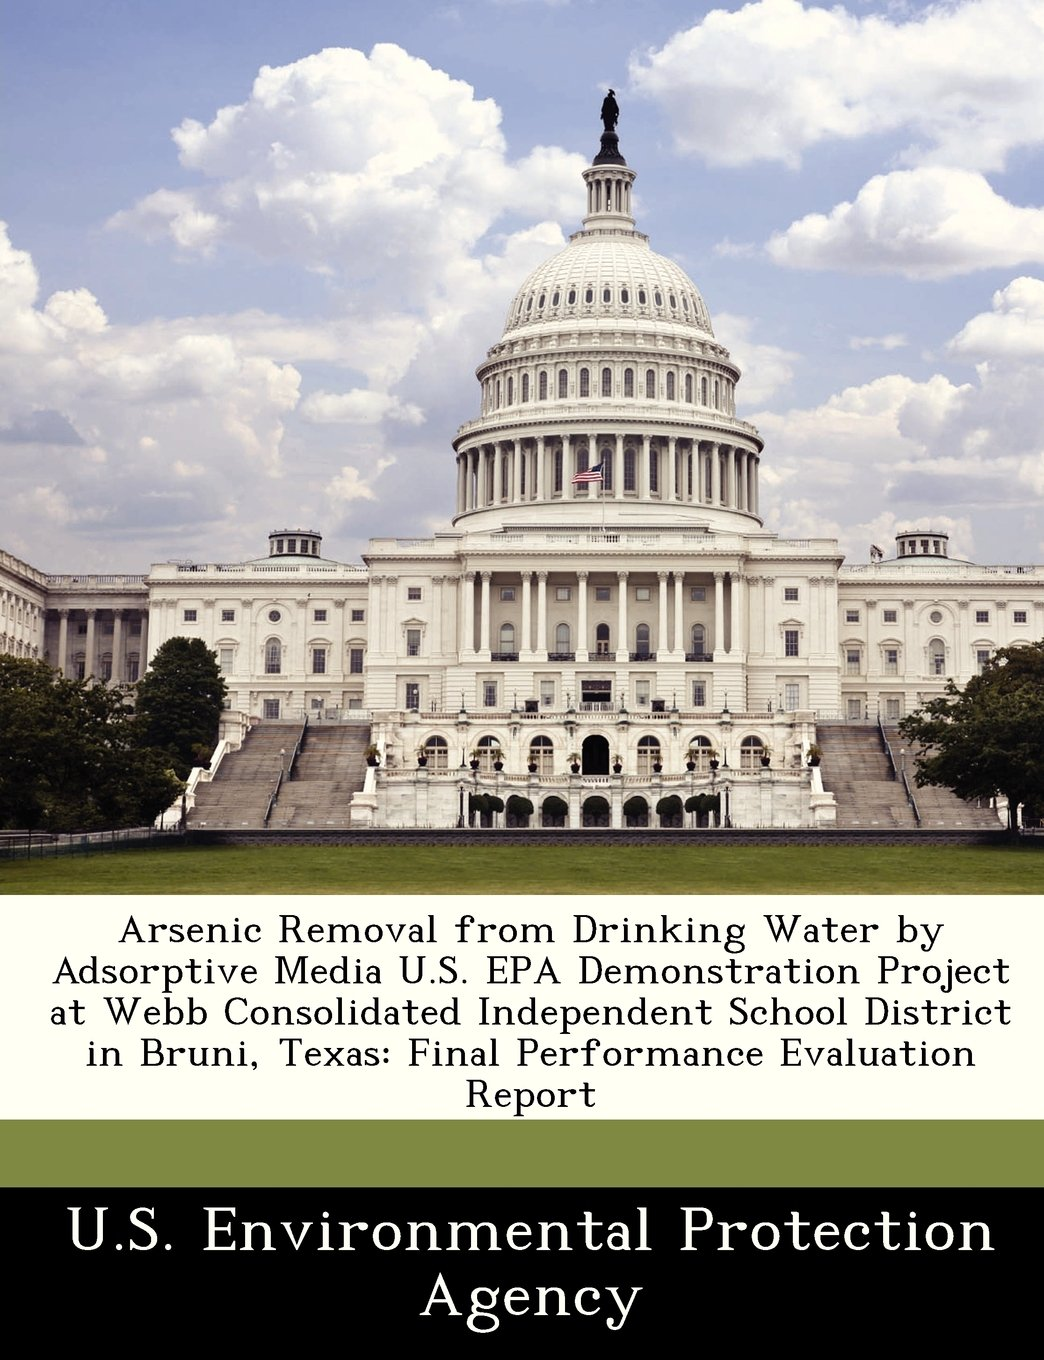 Download Arsenic Removal from Drinking Water by Adsorptive Media U.S. EPA Demonstration Project at Webb Consolidated Independent School District in Bruni, Texas: Final Performance Evaluation Report pdf